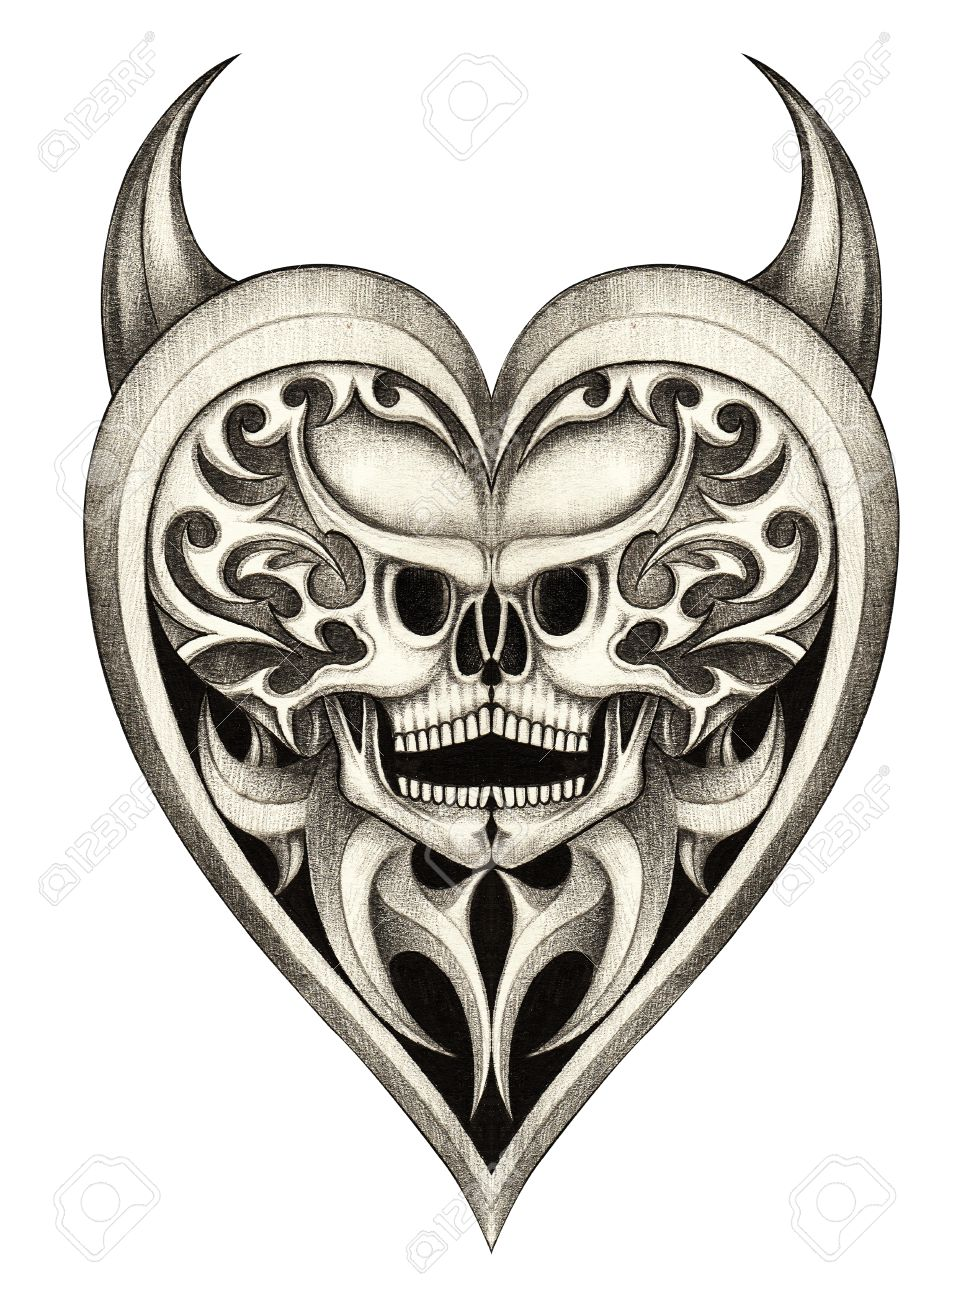 979x1300 Skull Heart Devil Tattoohand Pencil Drawing On Paper. Stock Photo